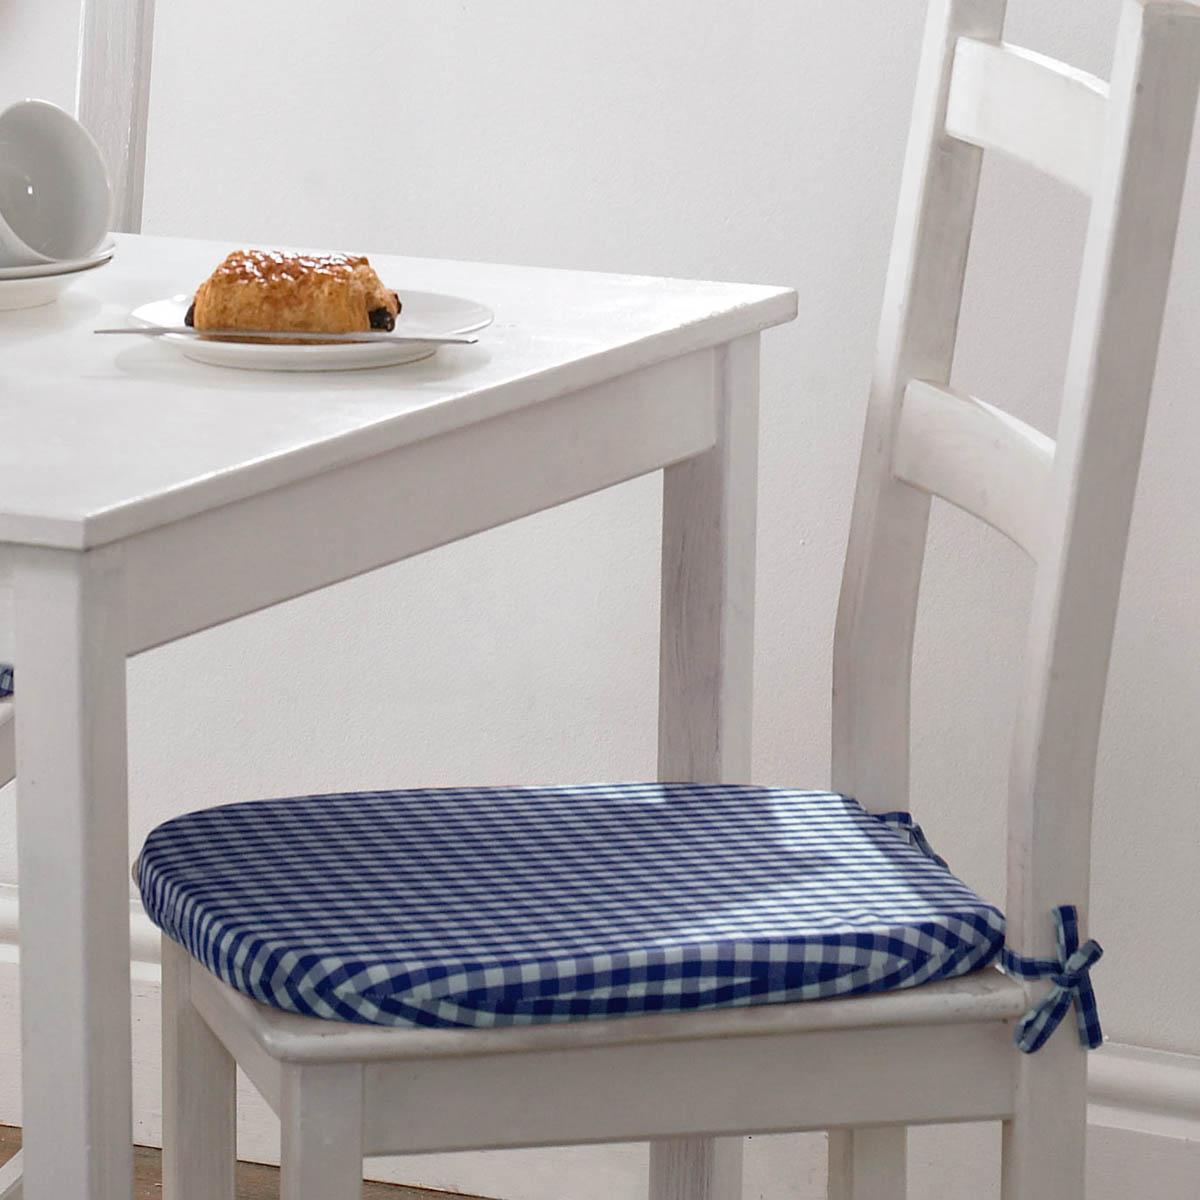 Stockists of Blue Gingham Value Seat Pad